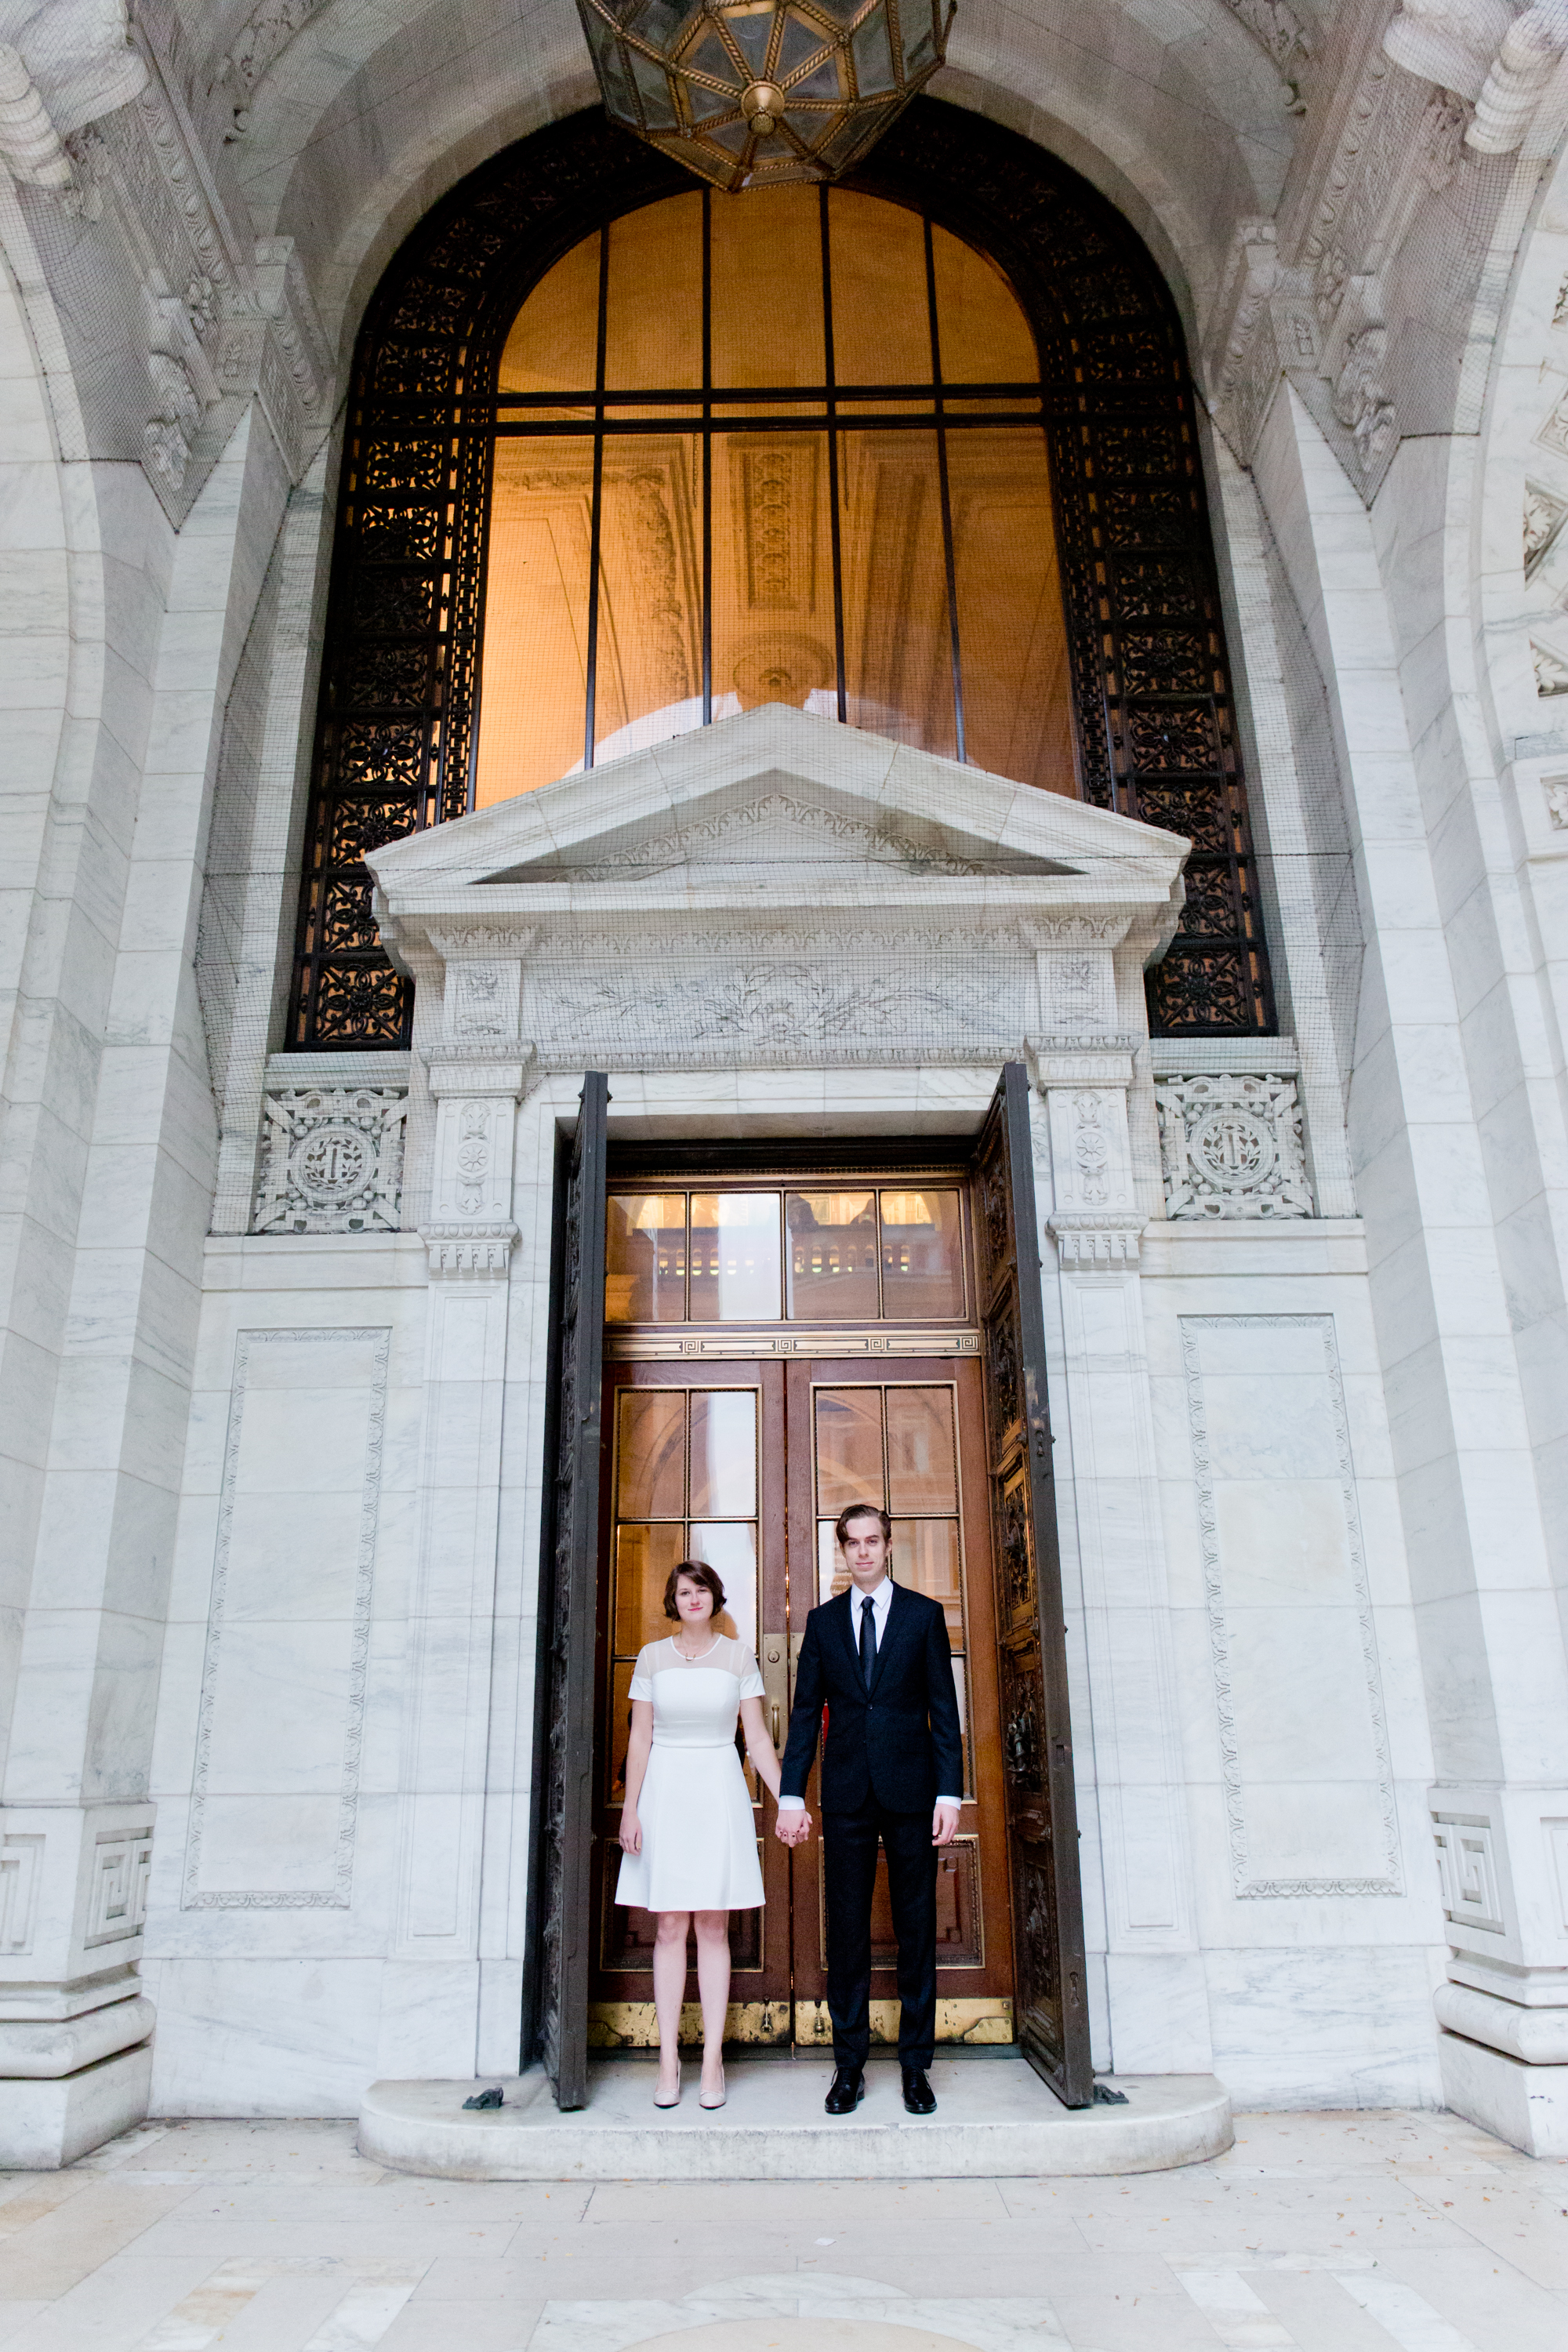 120_CarlyGaebe_SteadfastStudio_WeddingPhotography_NewYorkCity_Manhattan_BryantPark_PublicLibrary_Bride_Groom_Architecture.jpg